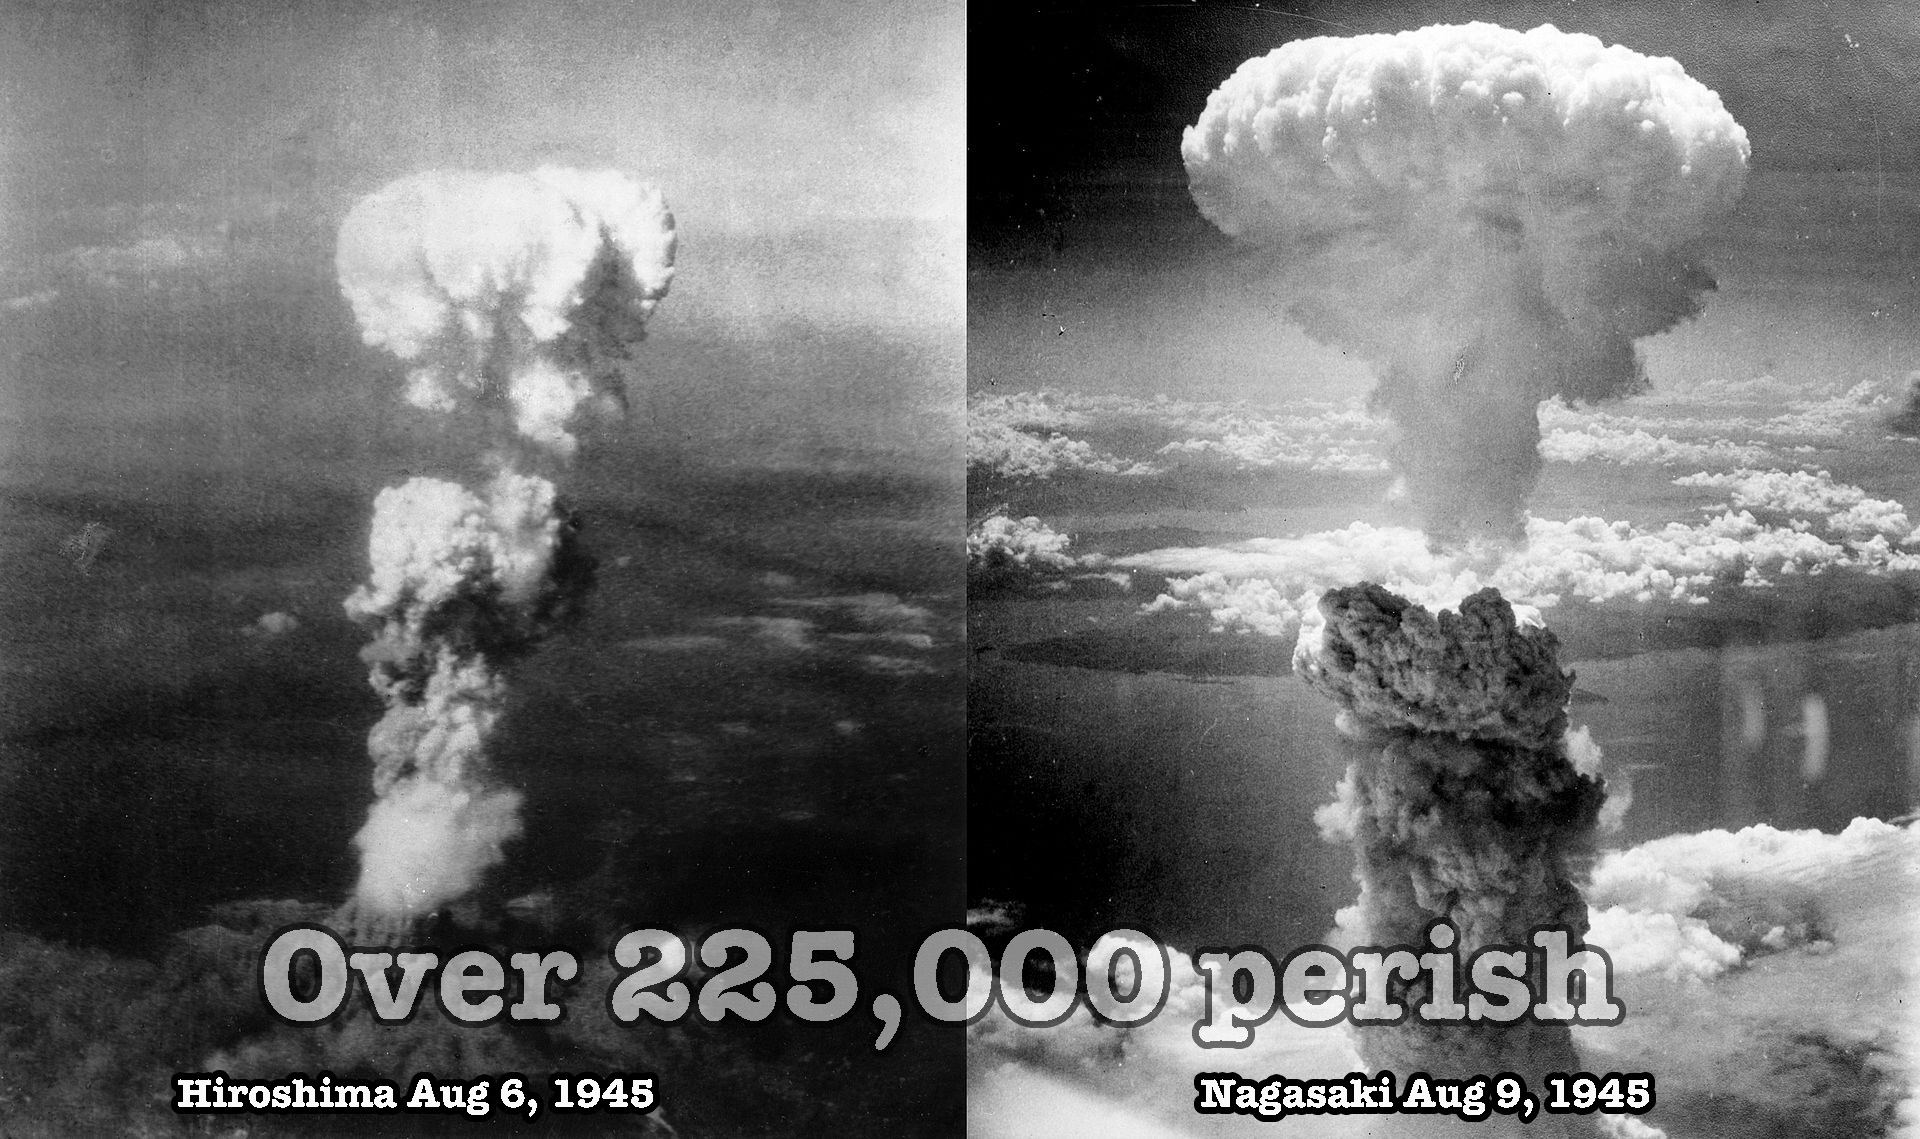 WHY WE SHOULD CARE TODAY ABOUT HIROSHIMA AND NAGASAKI